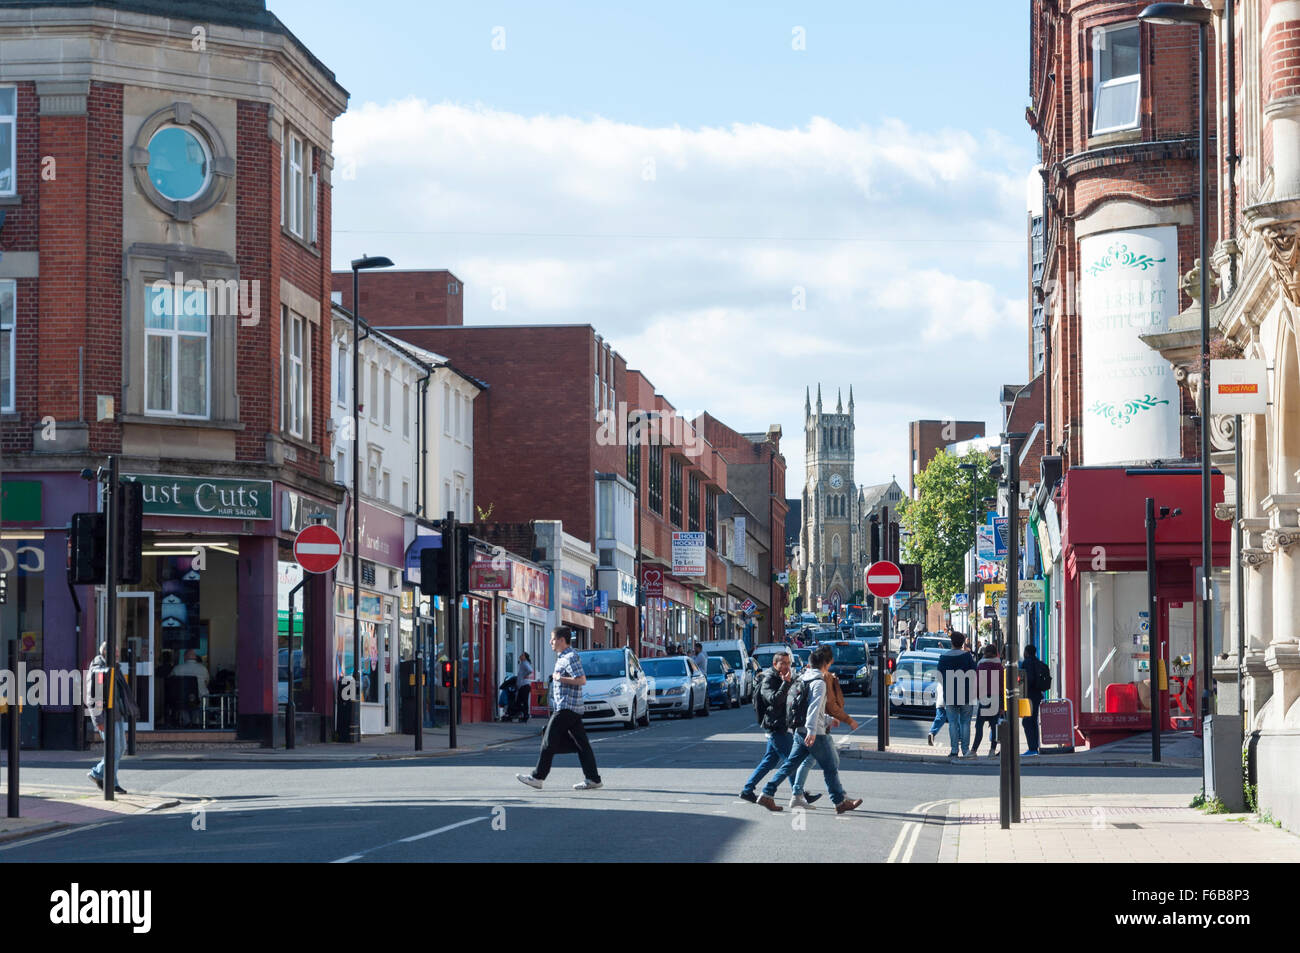 Victoria Road, Aldershot, Hampshire, England, United Kingdom Stock Photo